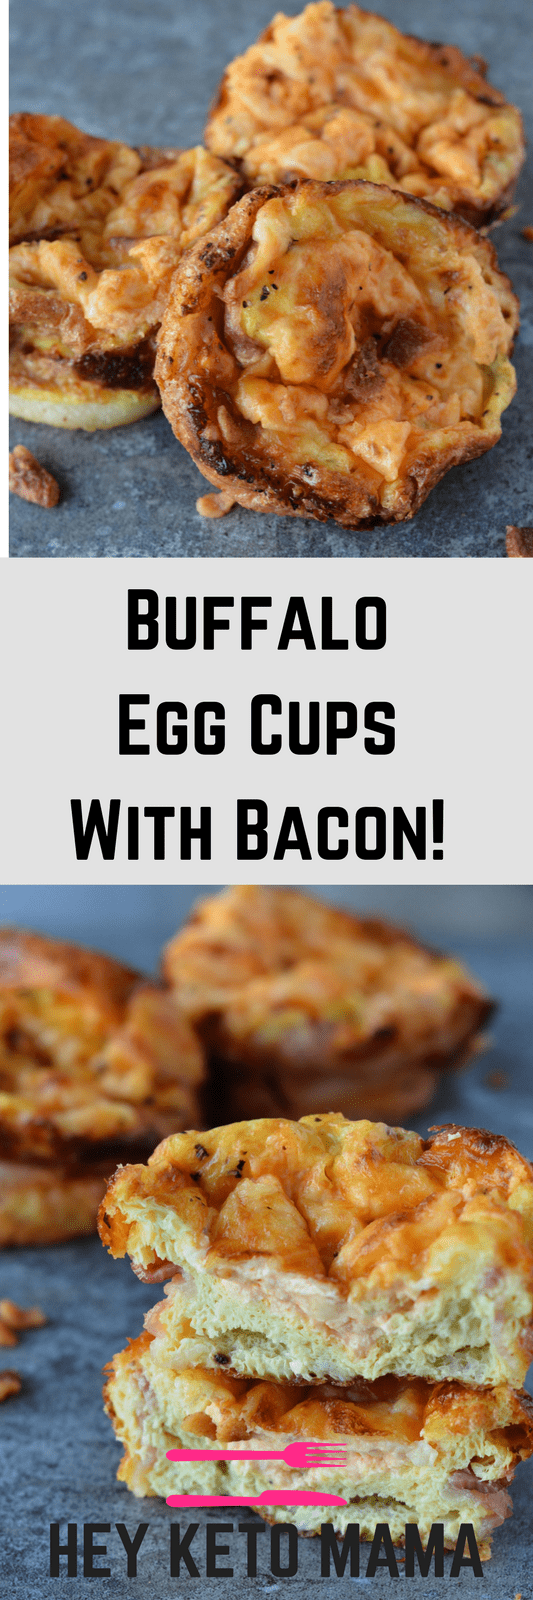 These buffalo egg cups with bacon are your ticket to a quick and easy low carb breakfast! | heyketomama.com